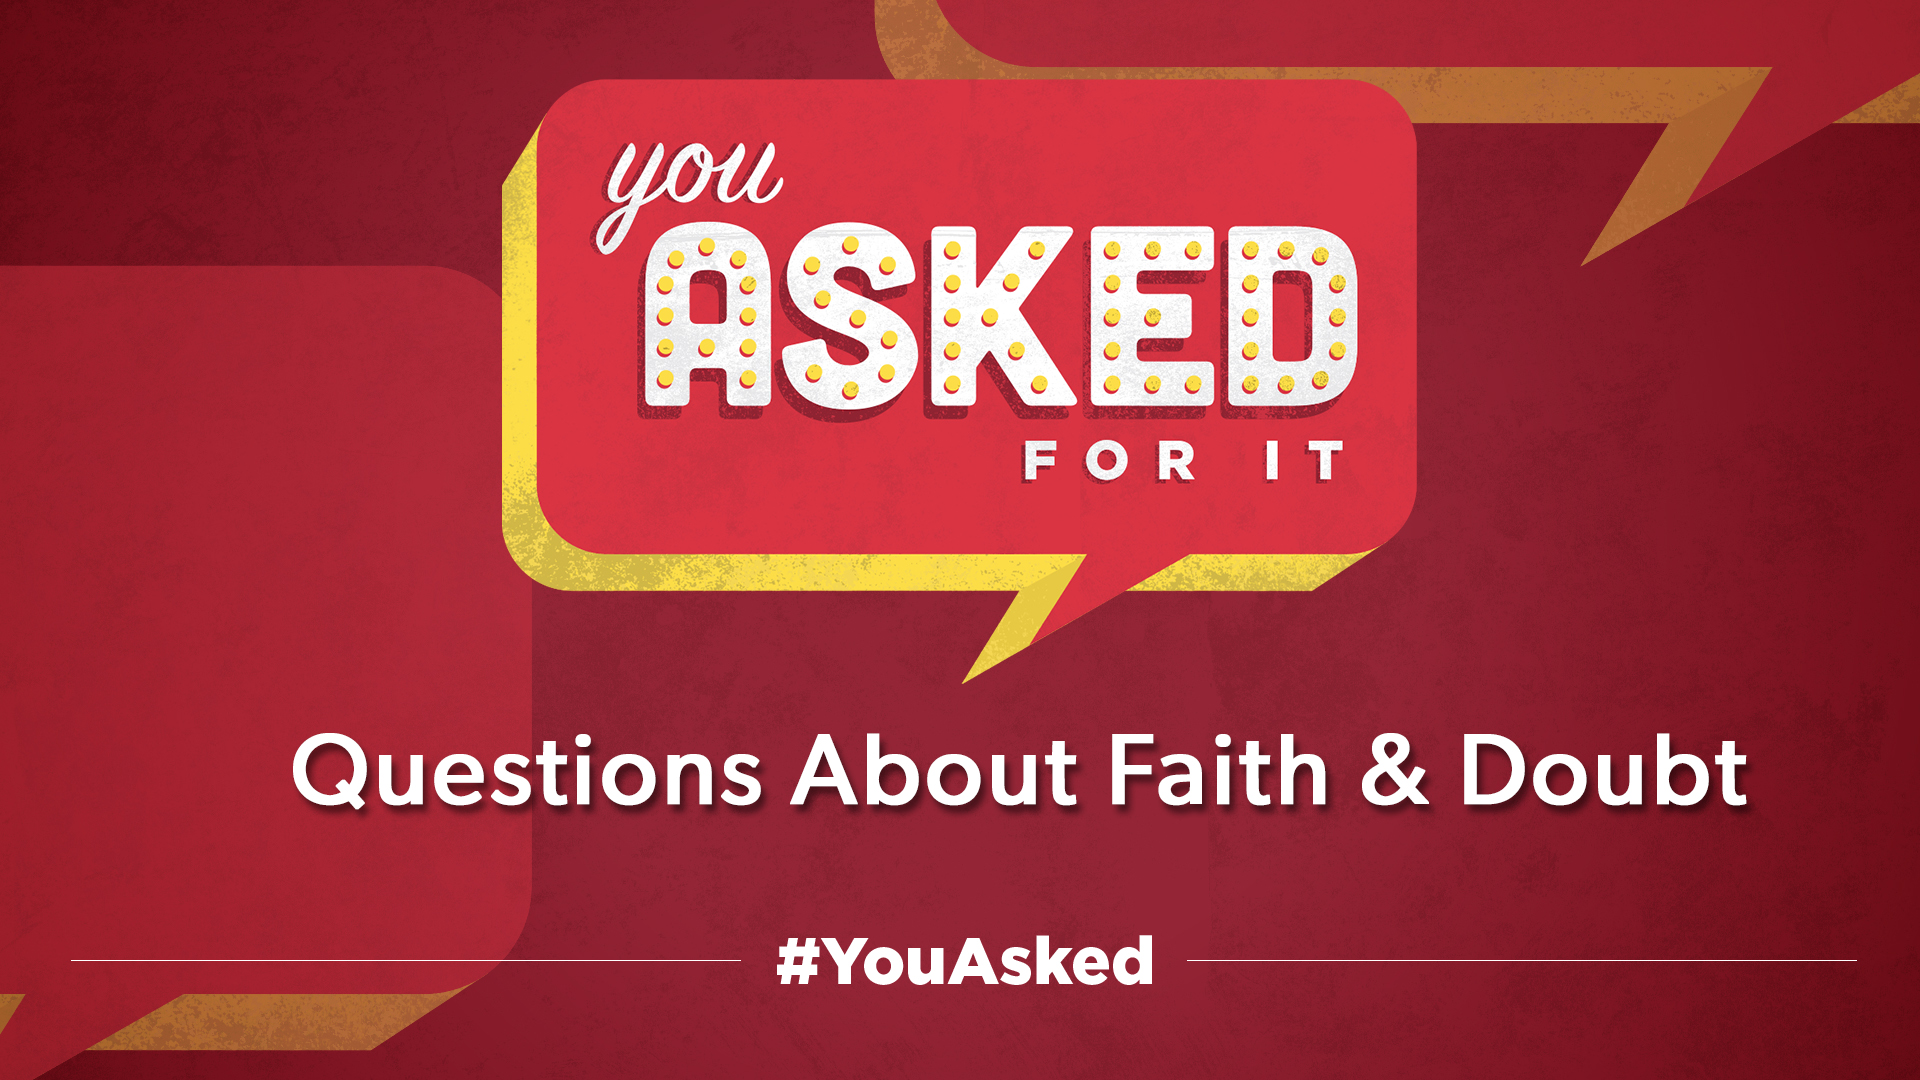 "You Asked For It  Life is full of questions: Paper or plastic? Should I get my drink medium, large or extra large? Is napping at work really a good idea? This series takes questions you texted in on Easter about forgiveness, relationships and stress. Now we answer those with messages filled from Biblical and spiritual truths. Everything from ""How Do I Have Faith and Overcome Doubt?"" to ""What Does God Really Want in My Life?""  #YouAsked"